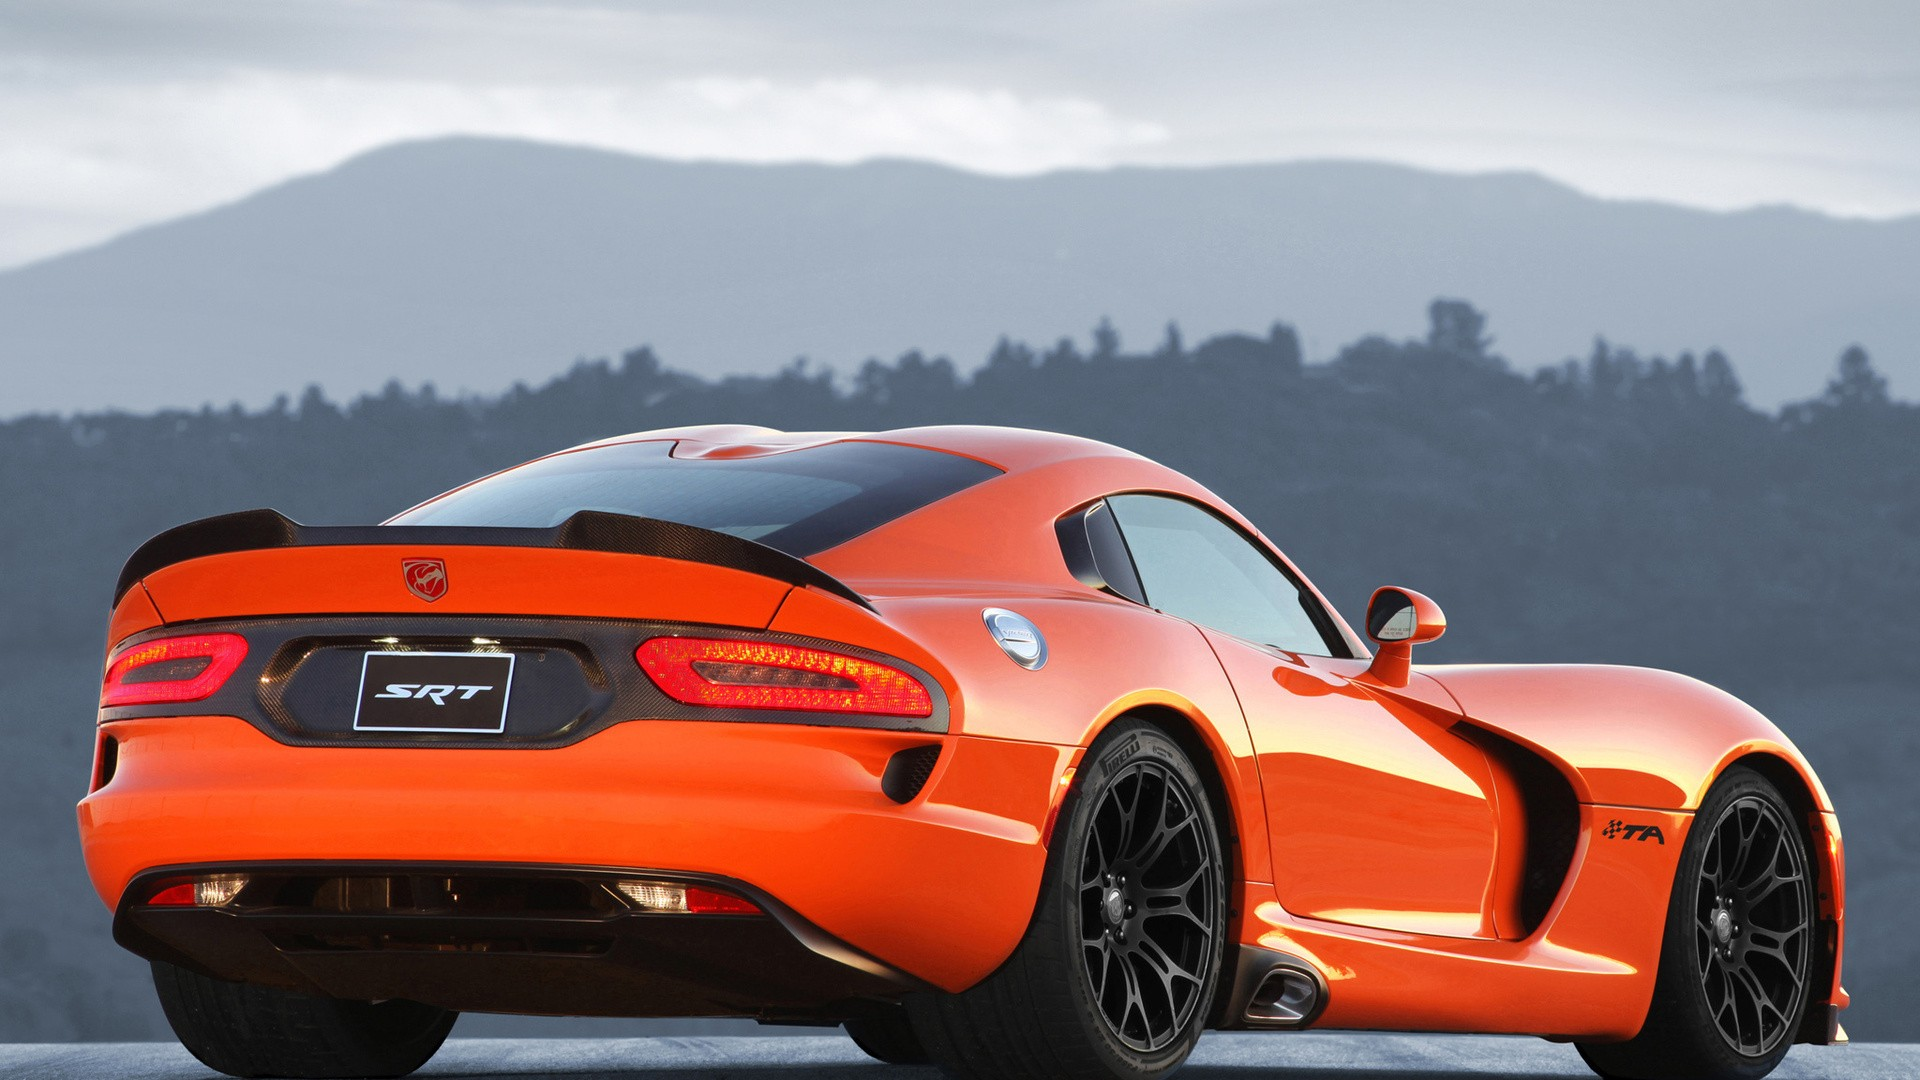 Wallpaper Hd 1600x900 Car Car Dodge Srt Viper Wallpapers Hd Desktop And Mobile